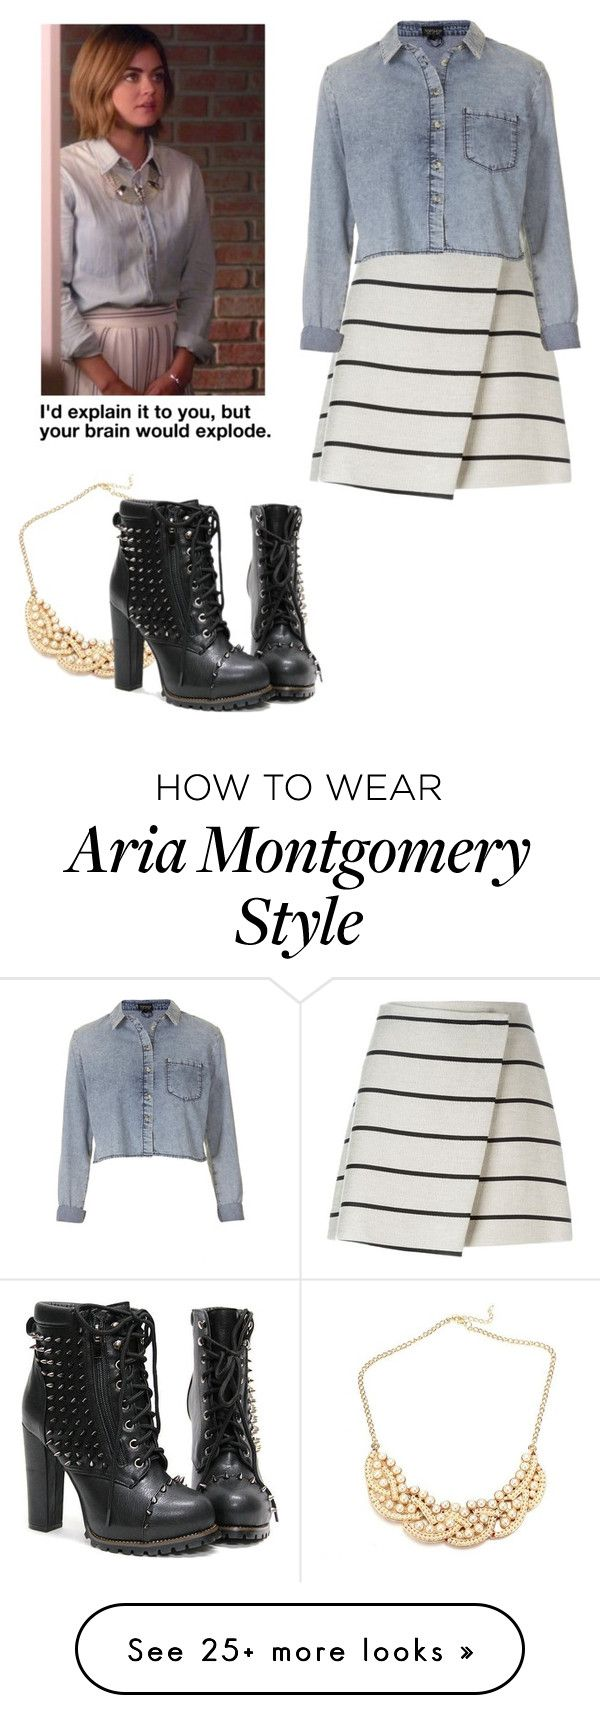 """Aria Montgomery - pll / pretty little liars"" by shadyannon on Polyvore featuring MSGM and Topshop"